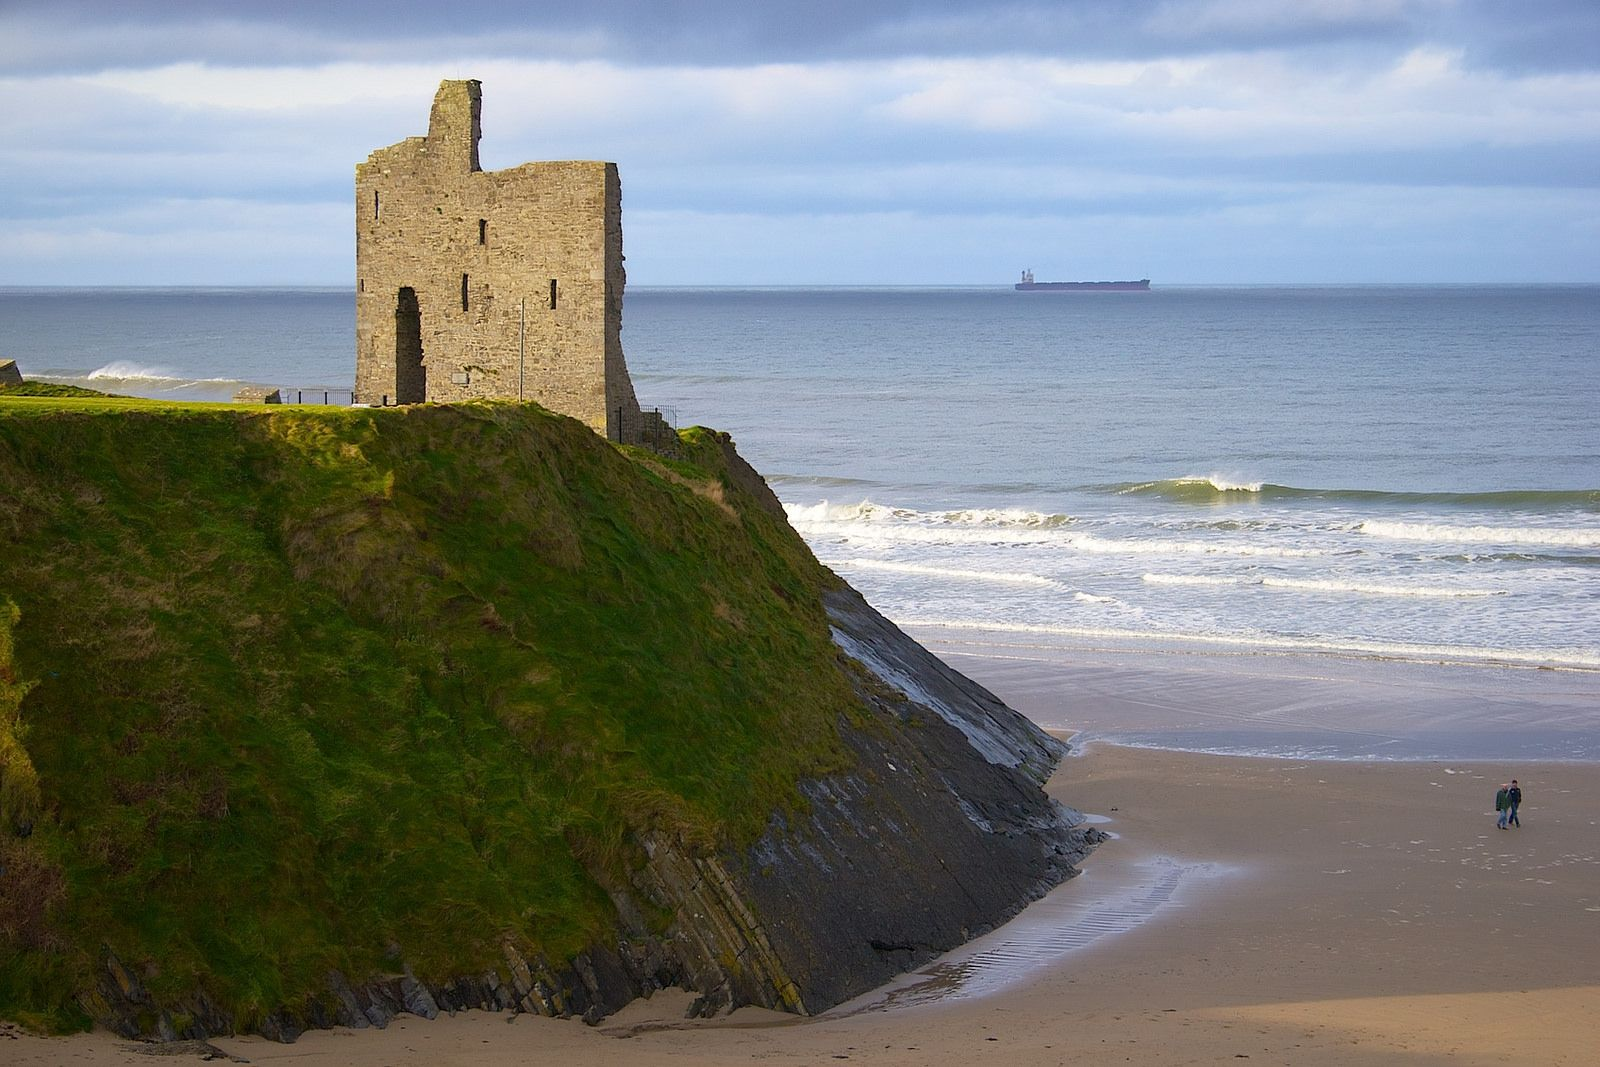 Ballybunion, Ireland